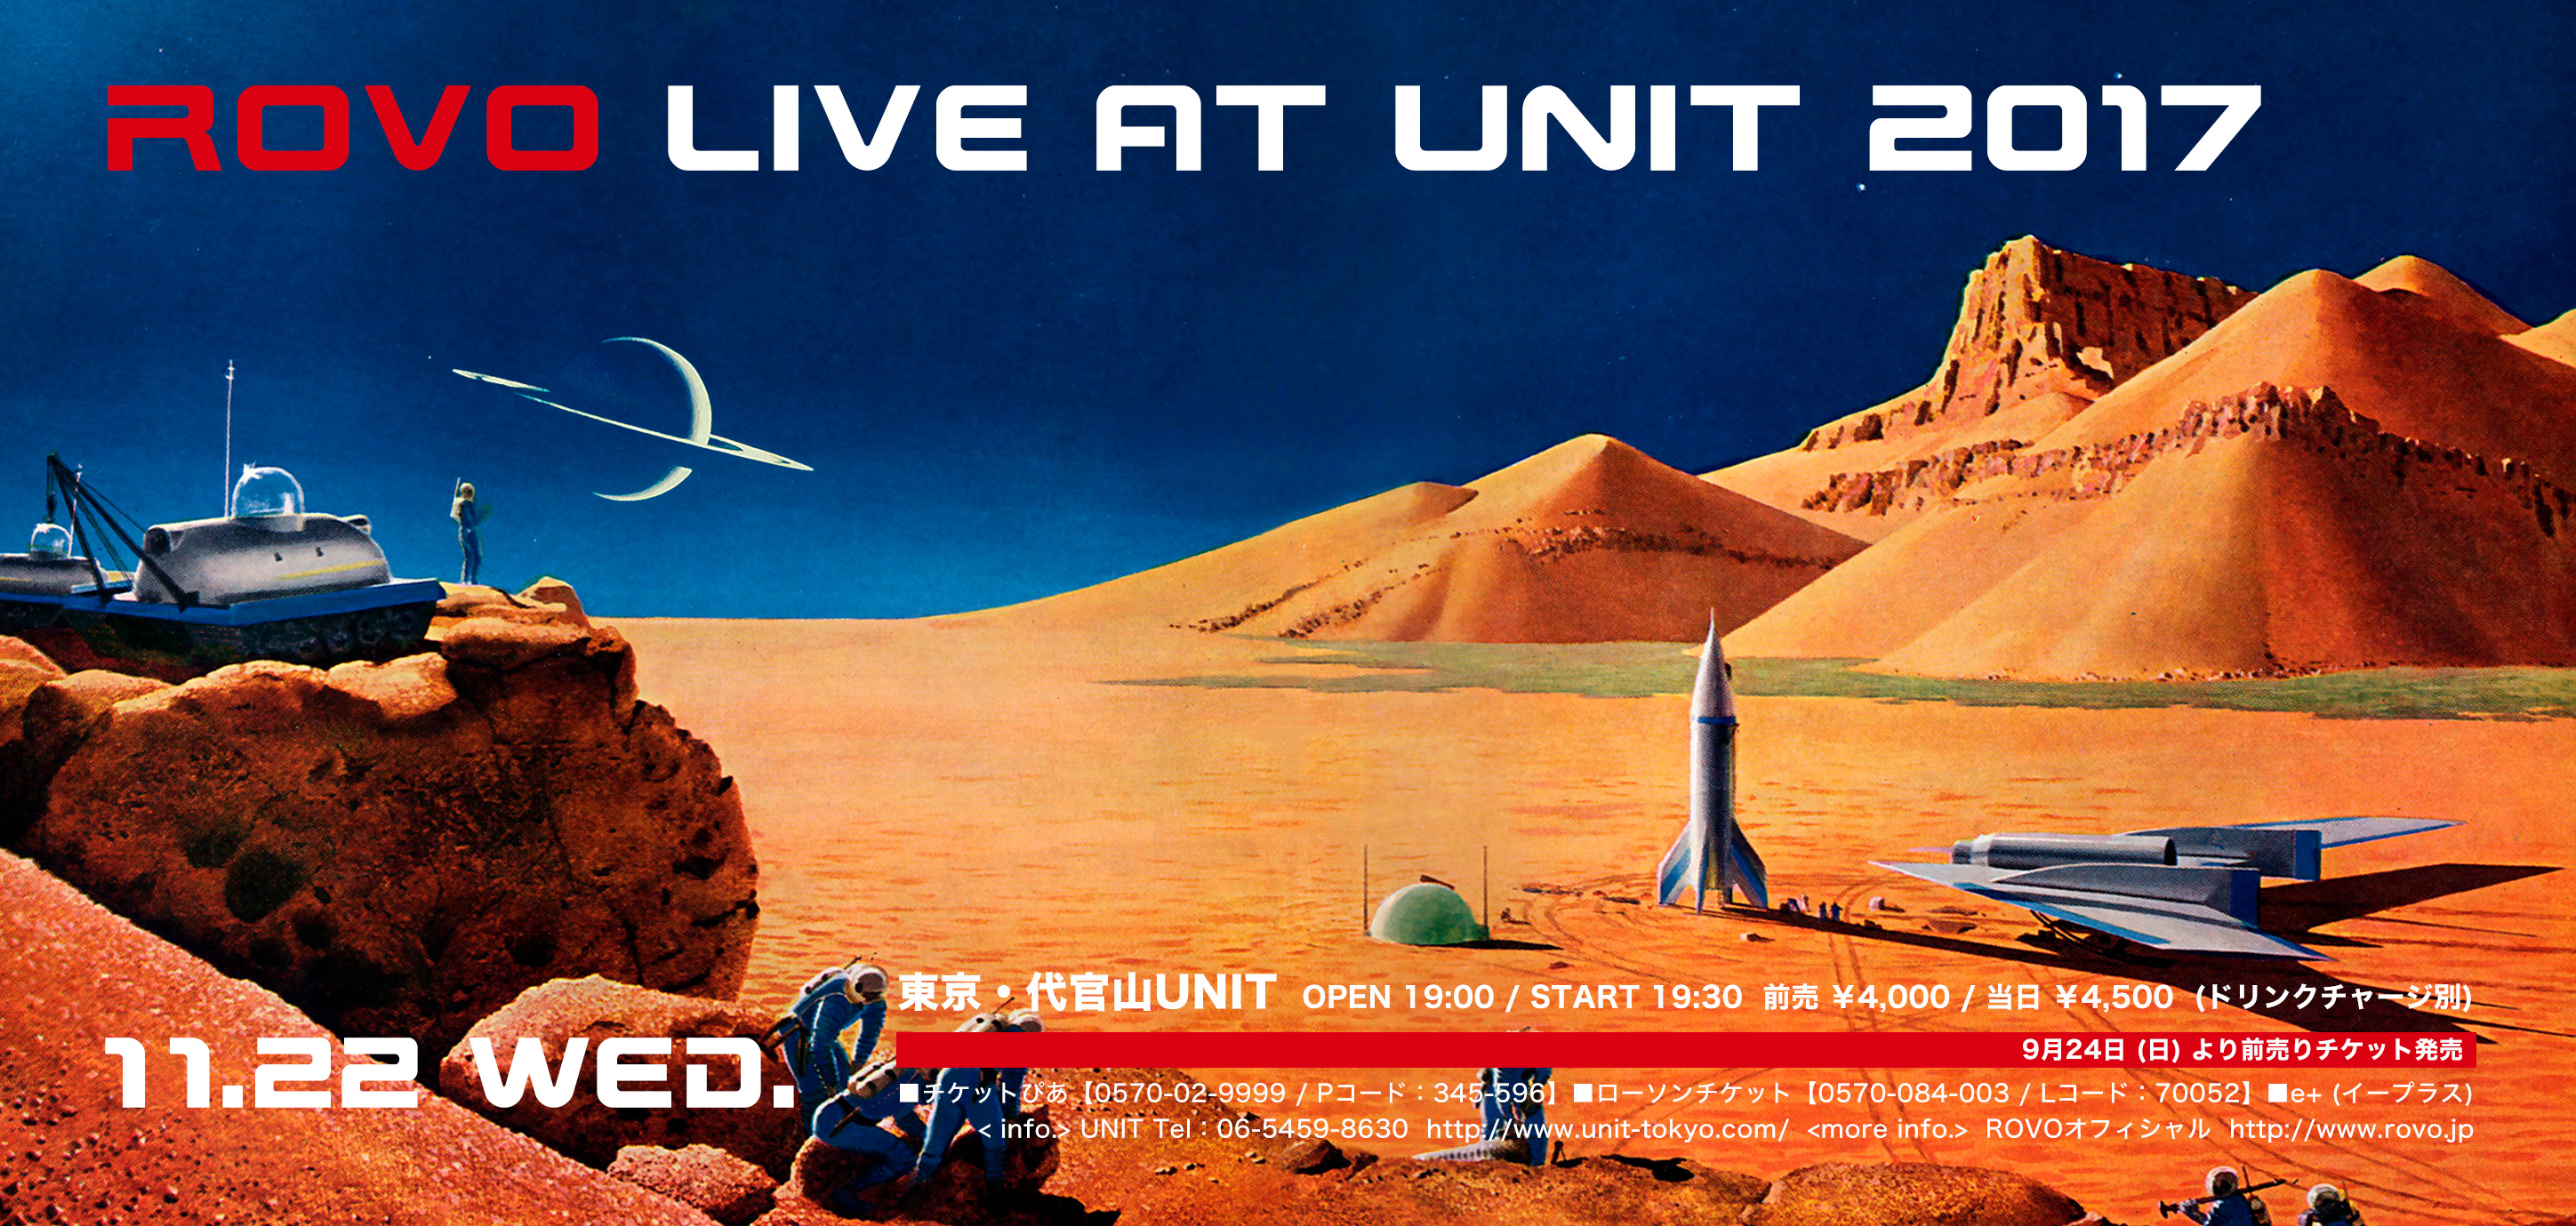 ROVO UNIT 2017 FLYER image.jpg